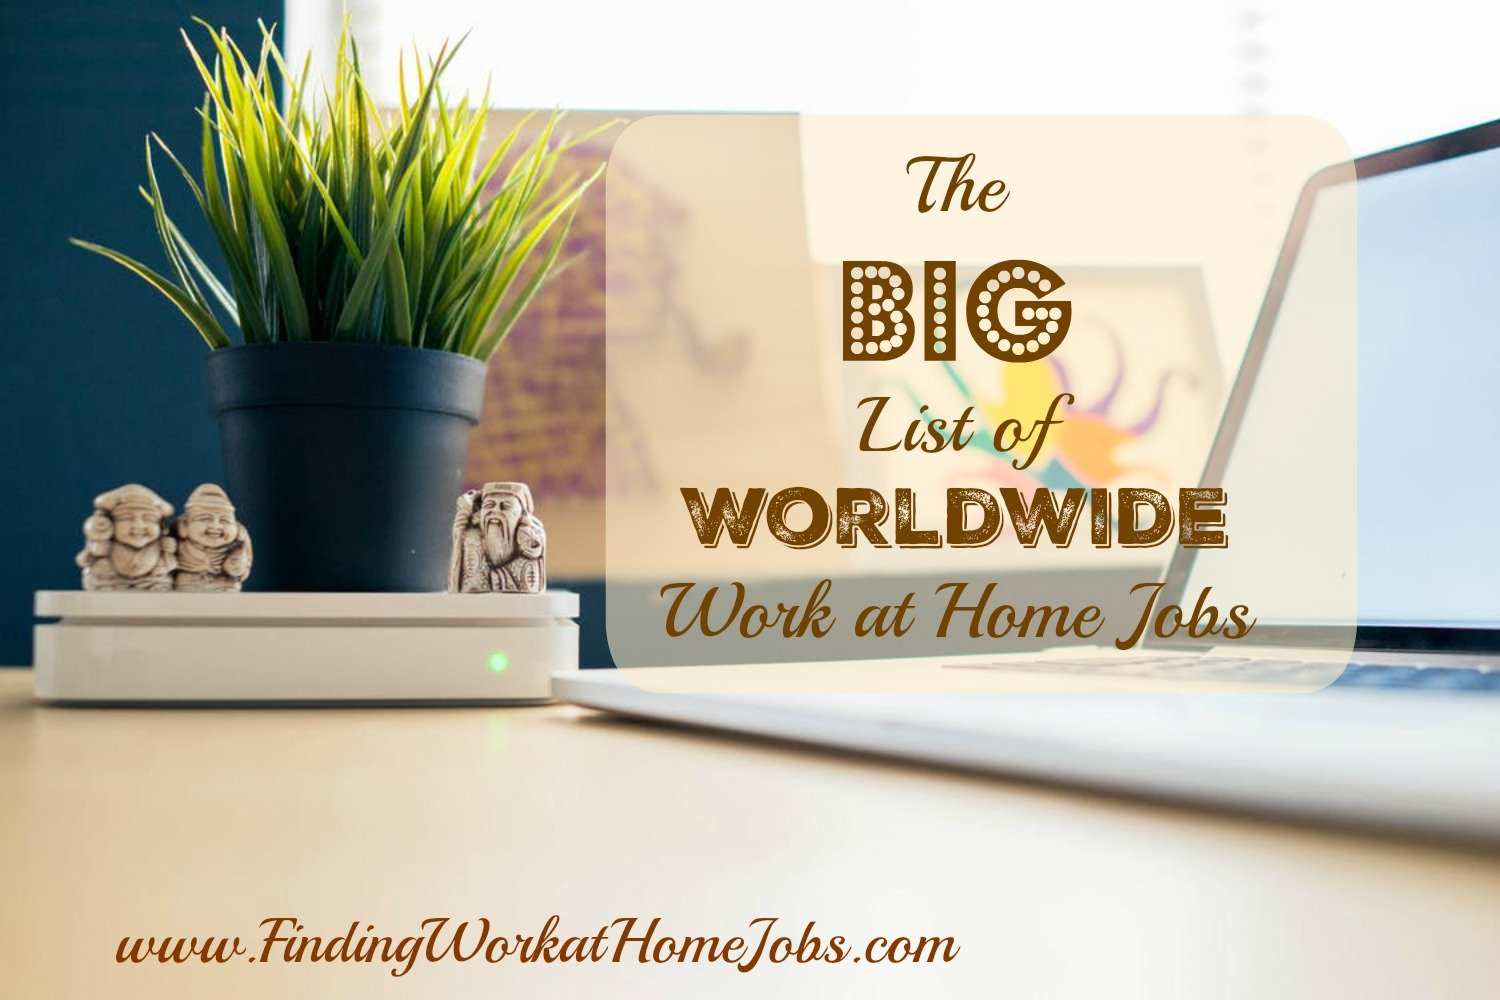 Worldwide work at home jobs